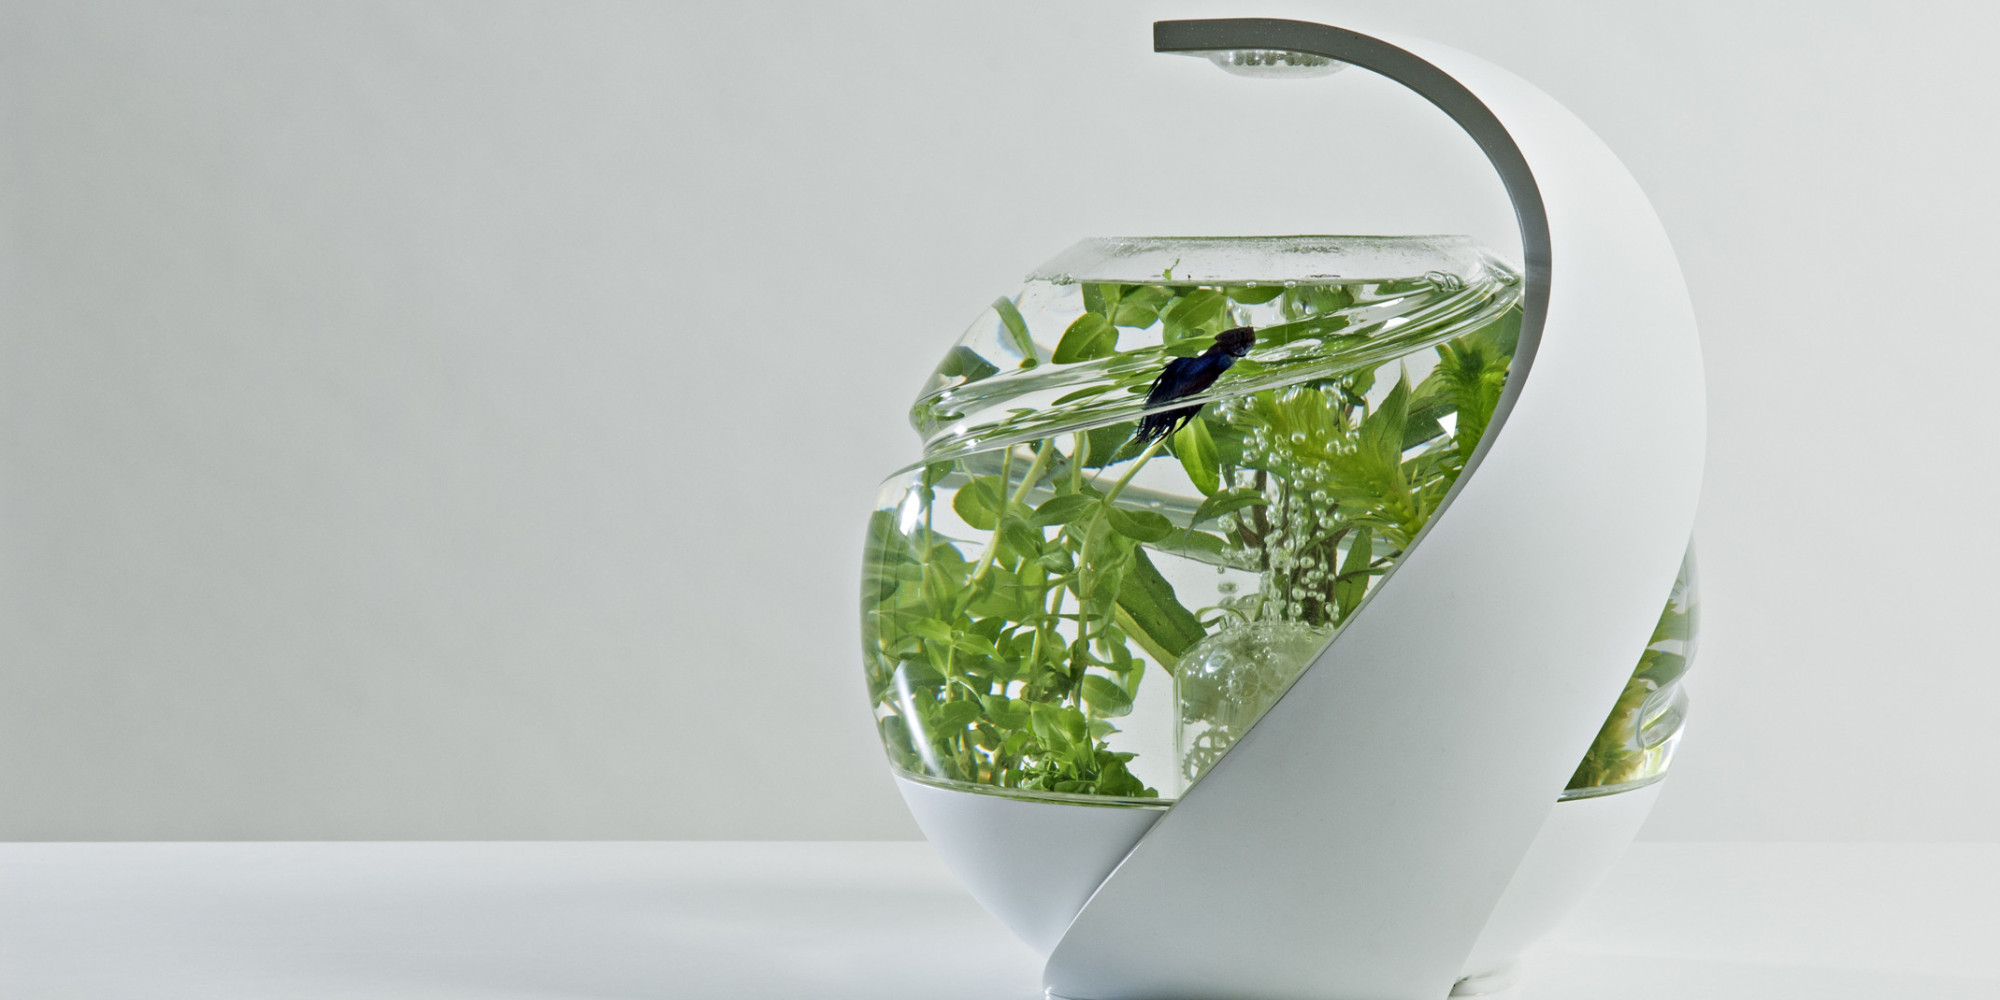 Finally the self cleaning fish tank now exists huffpost uk for Clean fish tank